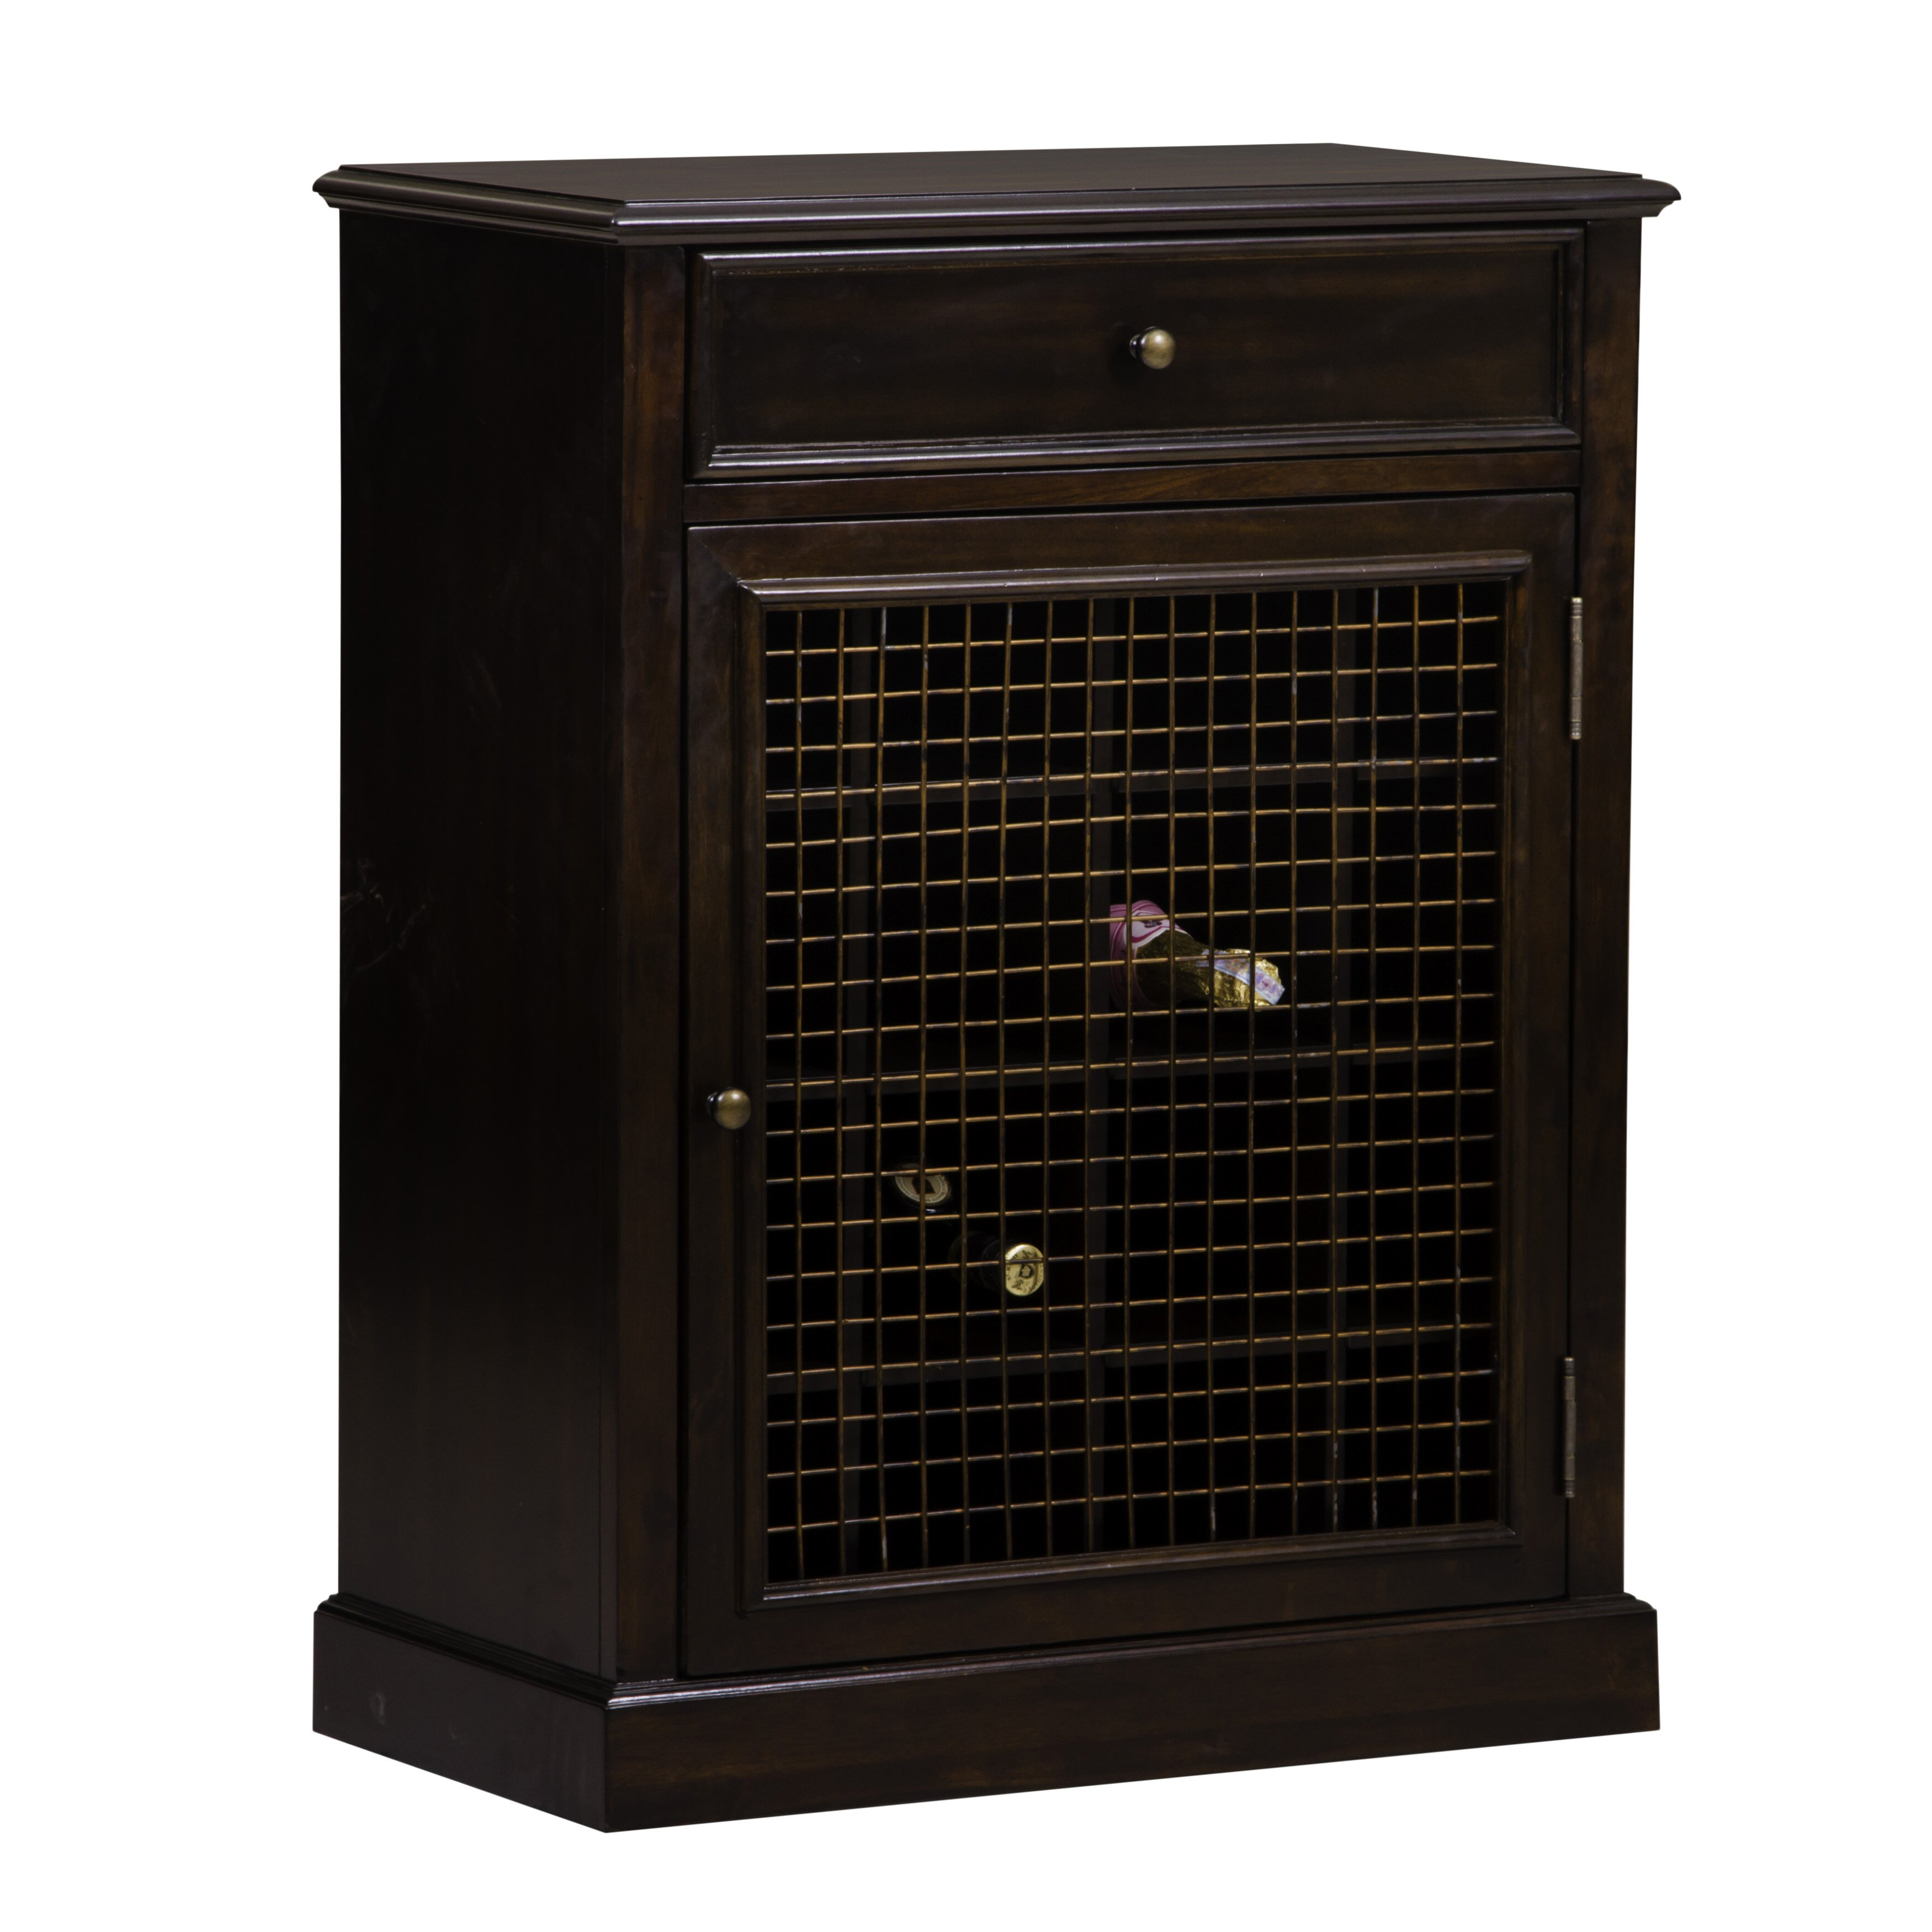 Darby home co biali 16 bottle floor wine cabinet reviews for Floor wine cabinet